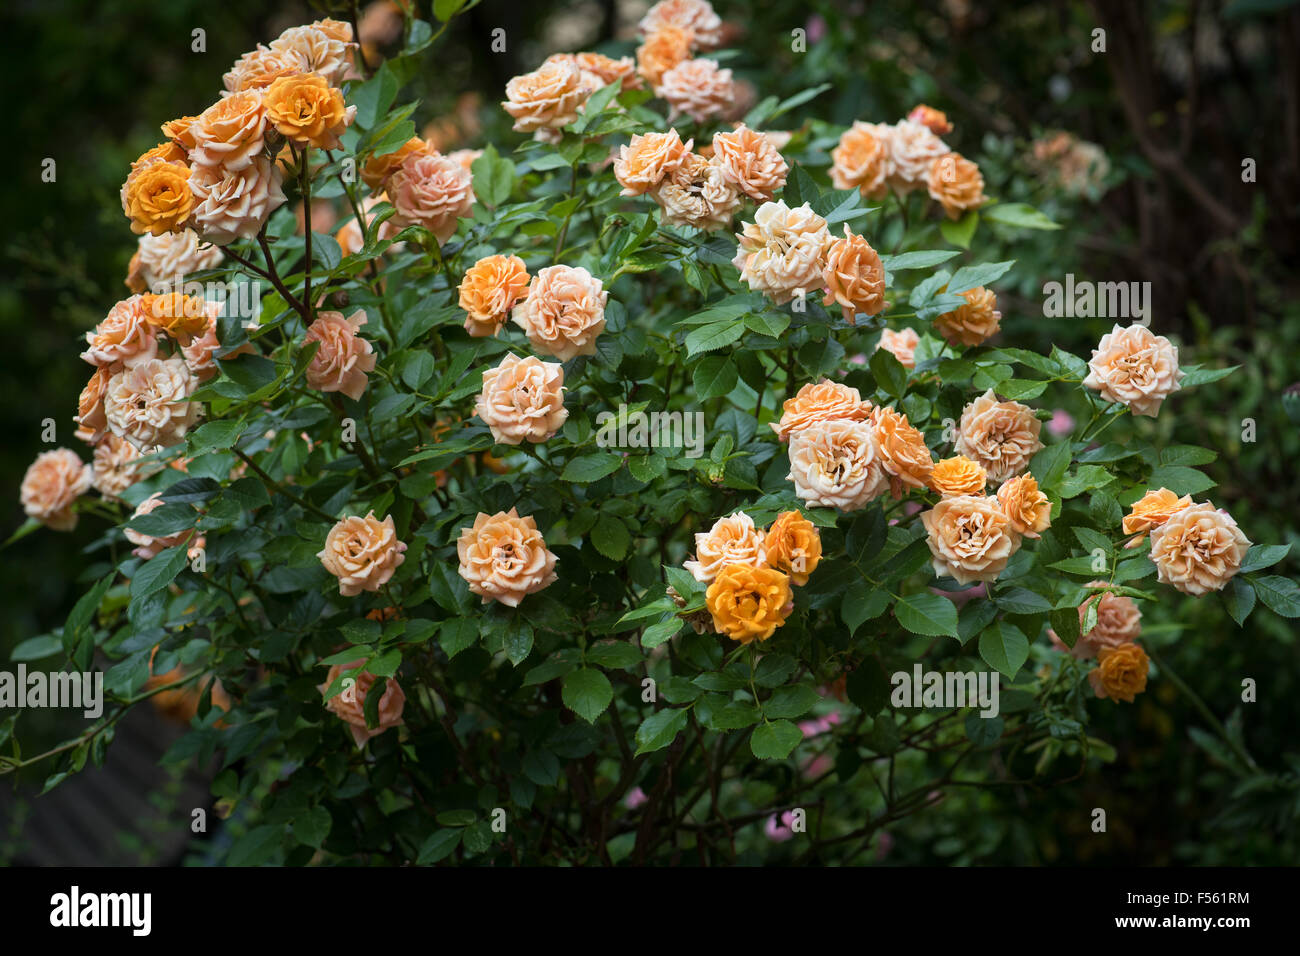 berlin berlin germany rose bush in the garden stock photo royalty free image. Black Bedroom Furniture Sets. Home Design Ideas